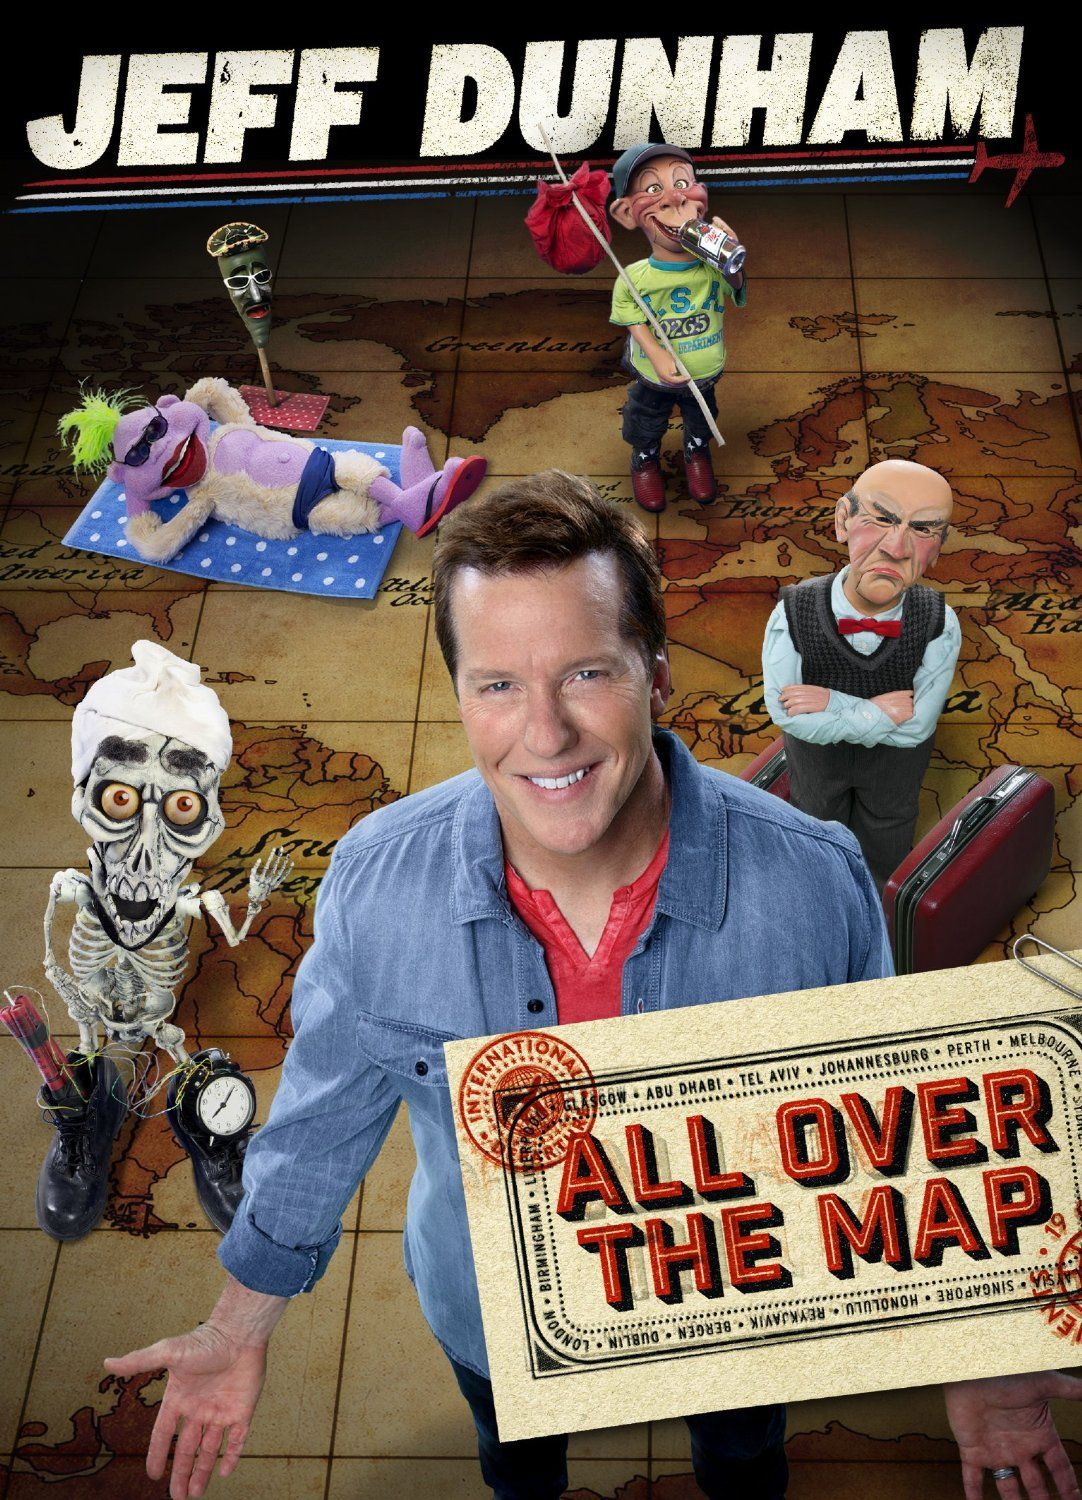 Popular ventriloquist Jeff Dunham brings his most famous friends